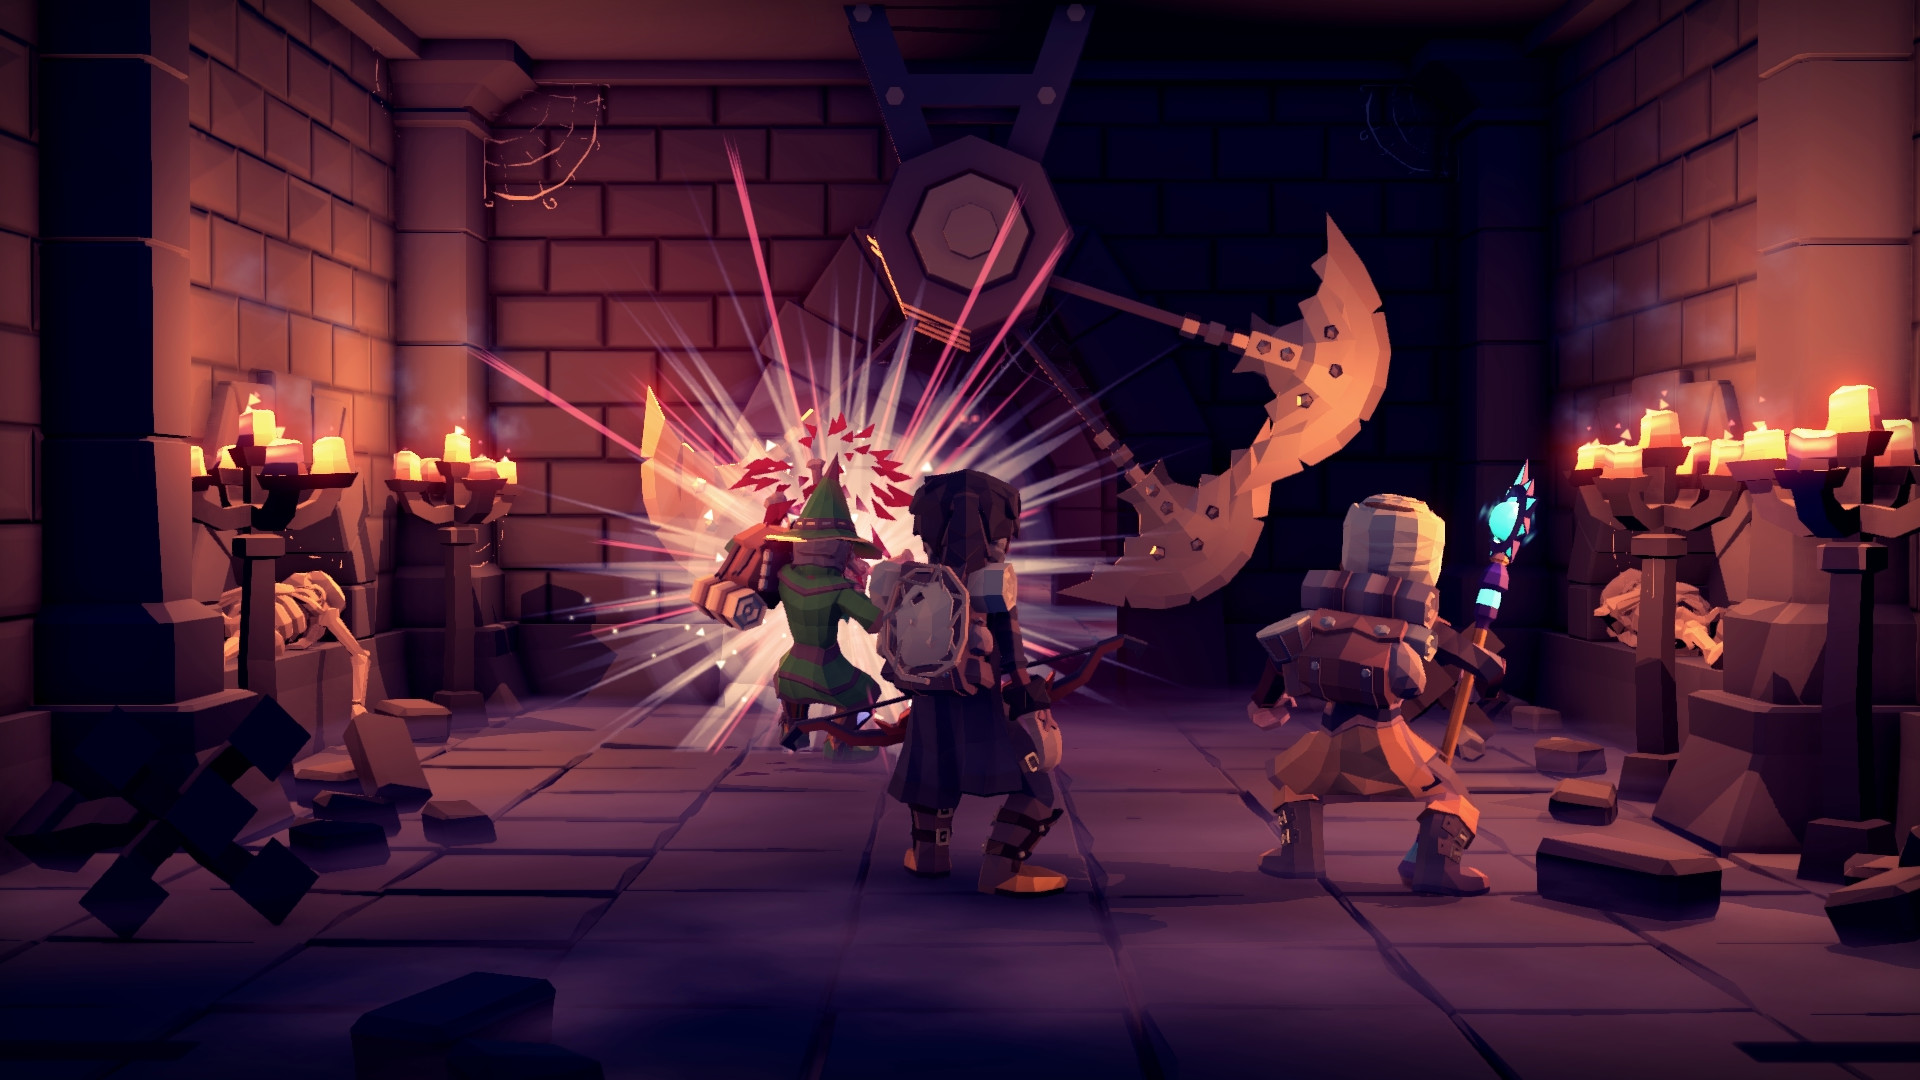 Adventurers face deadly traps in a dungeon in a screenshot from For the King.